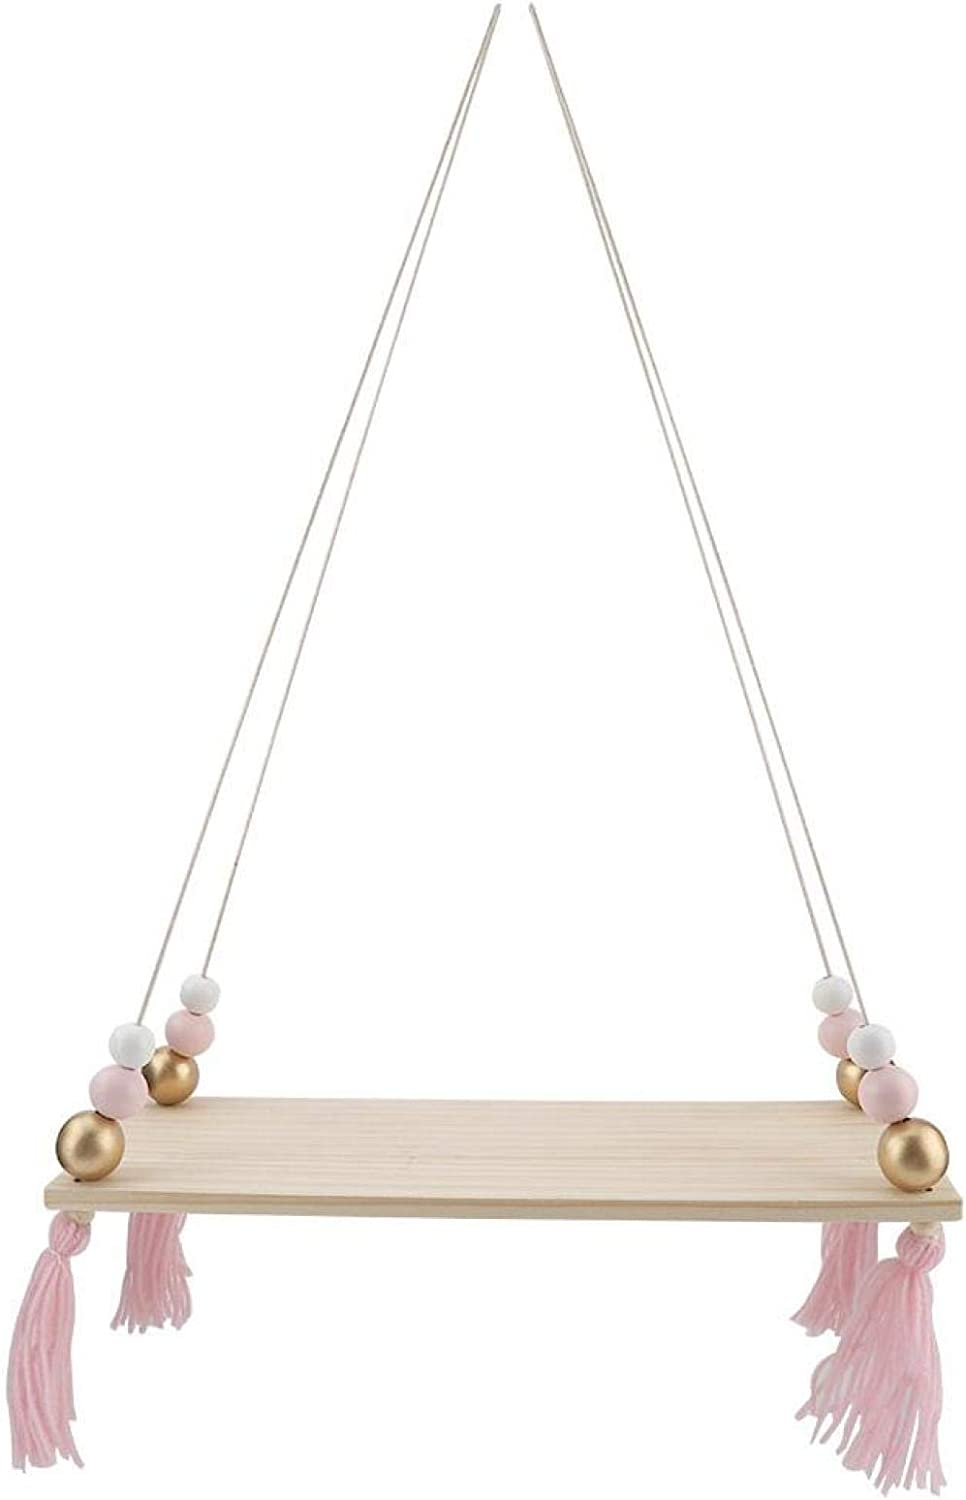 SALUTUY Wall Hanging Rack Storage Decor Time sale Shelving Max 71% OFF Simple Th